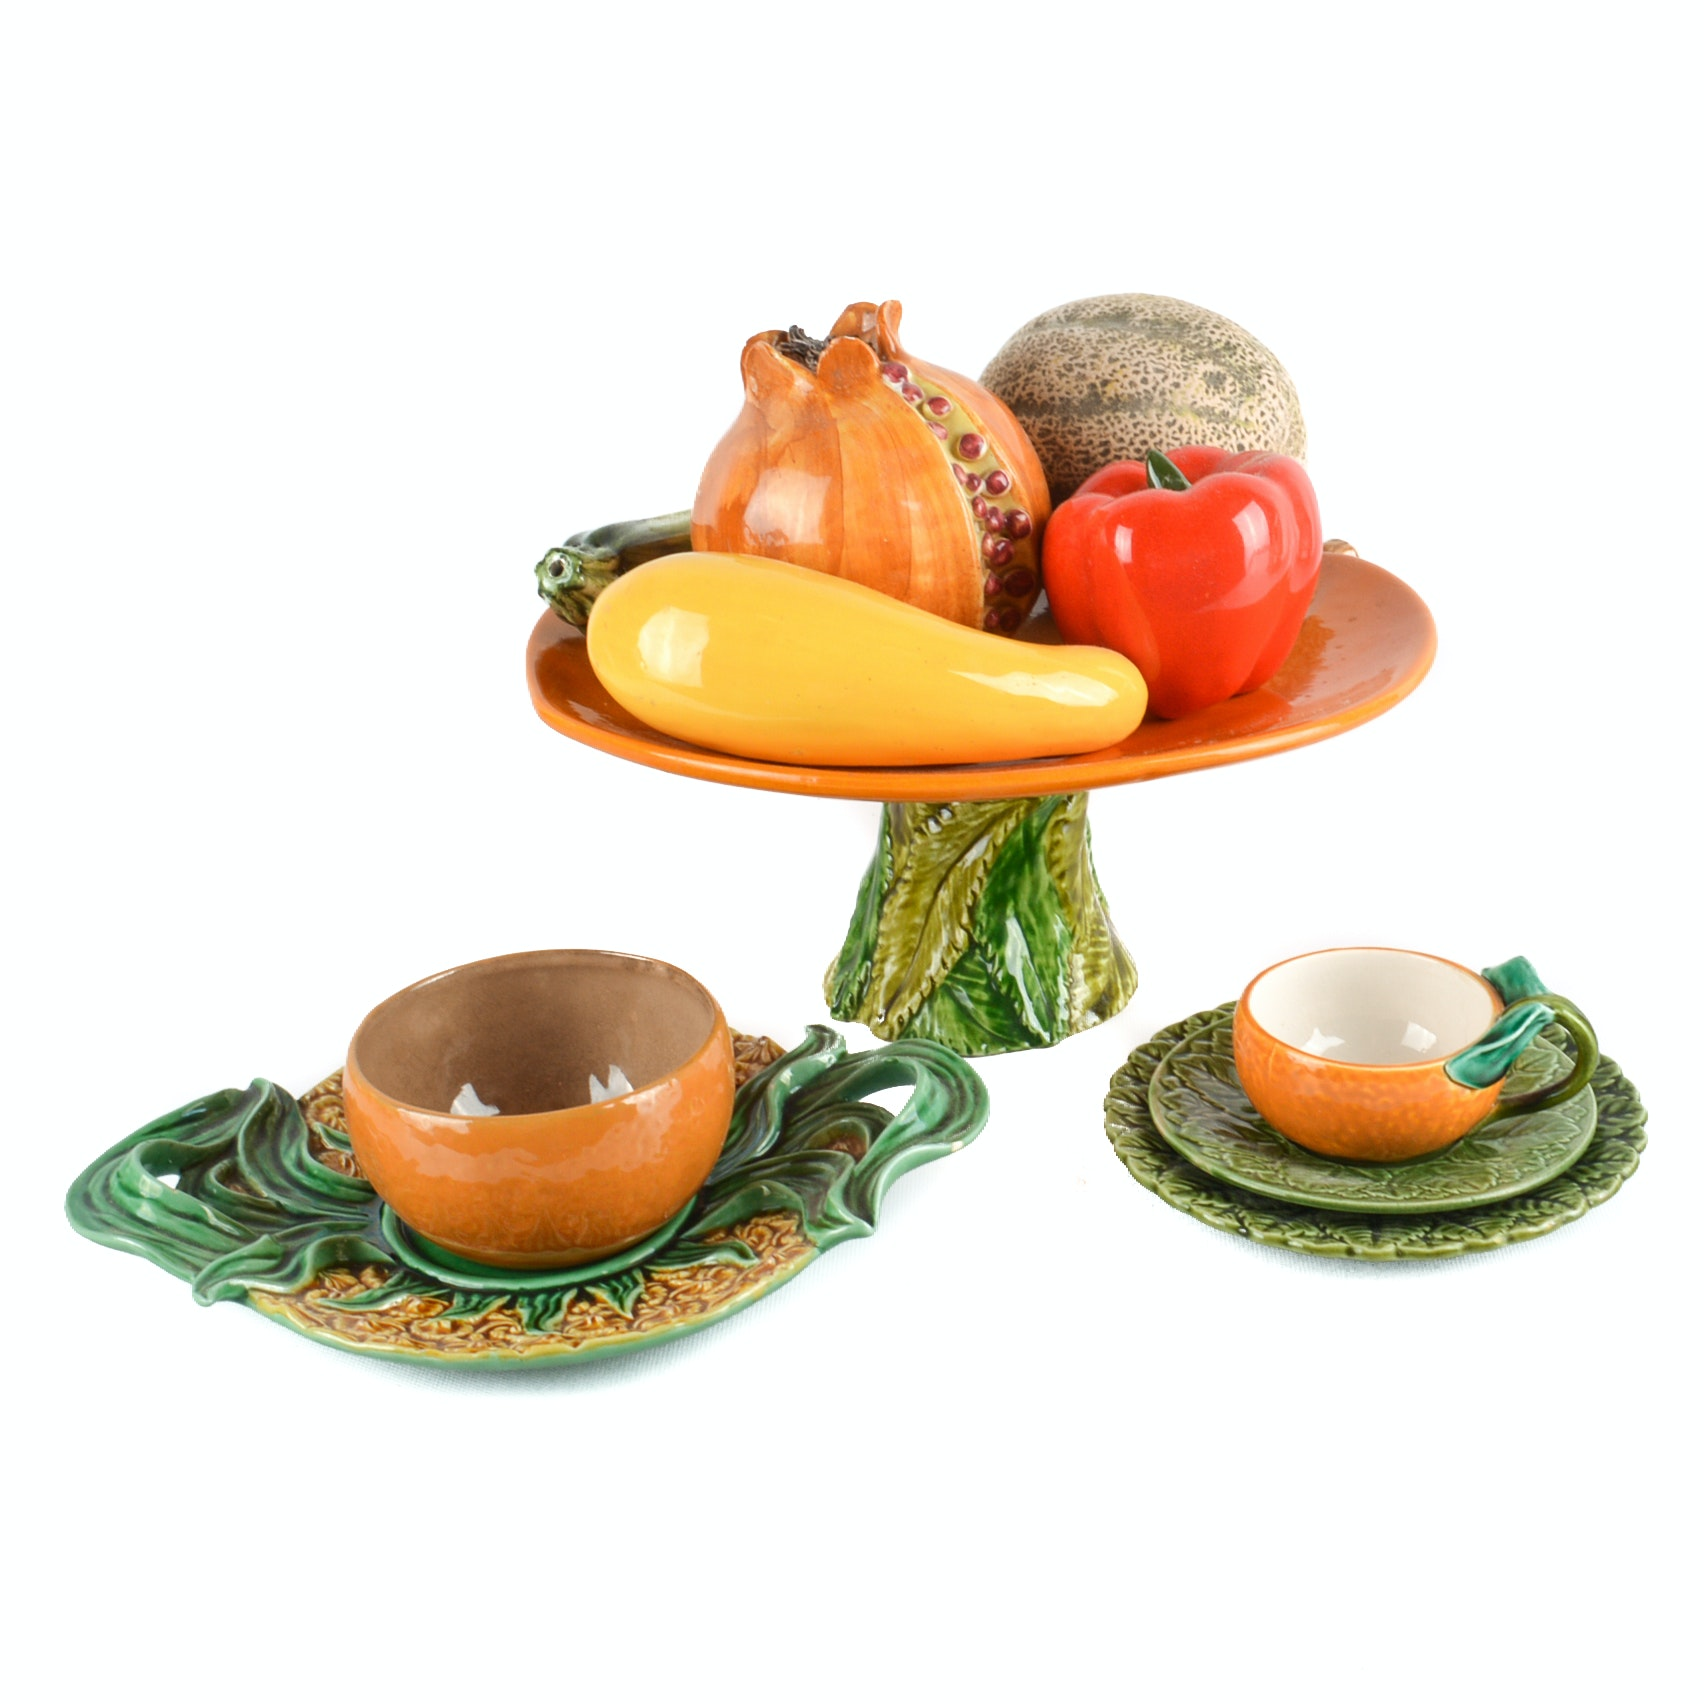 Sarreguemines Majolica Ceramic Decorative Tableware